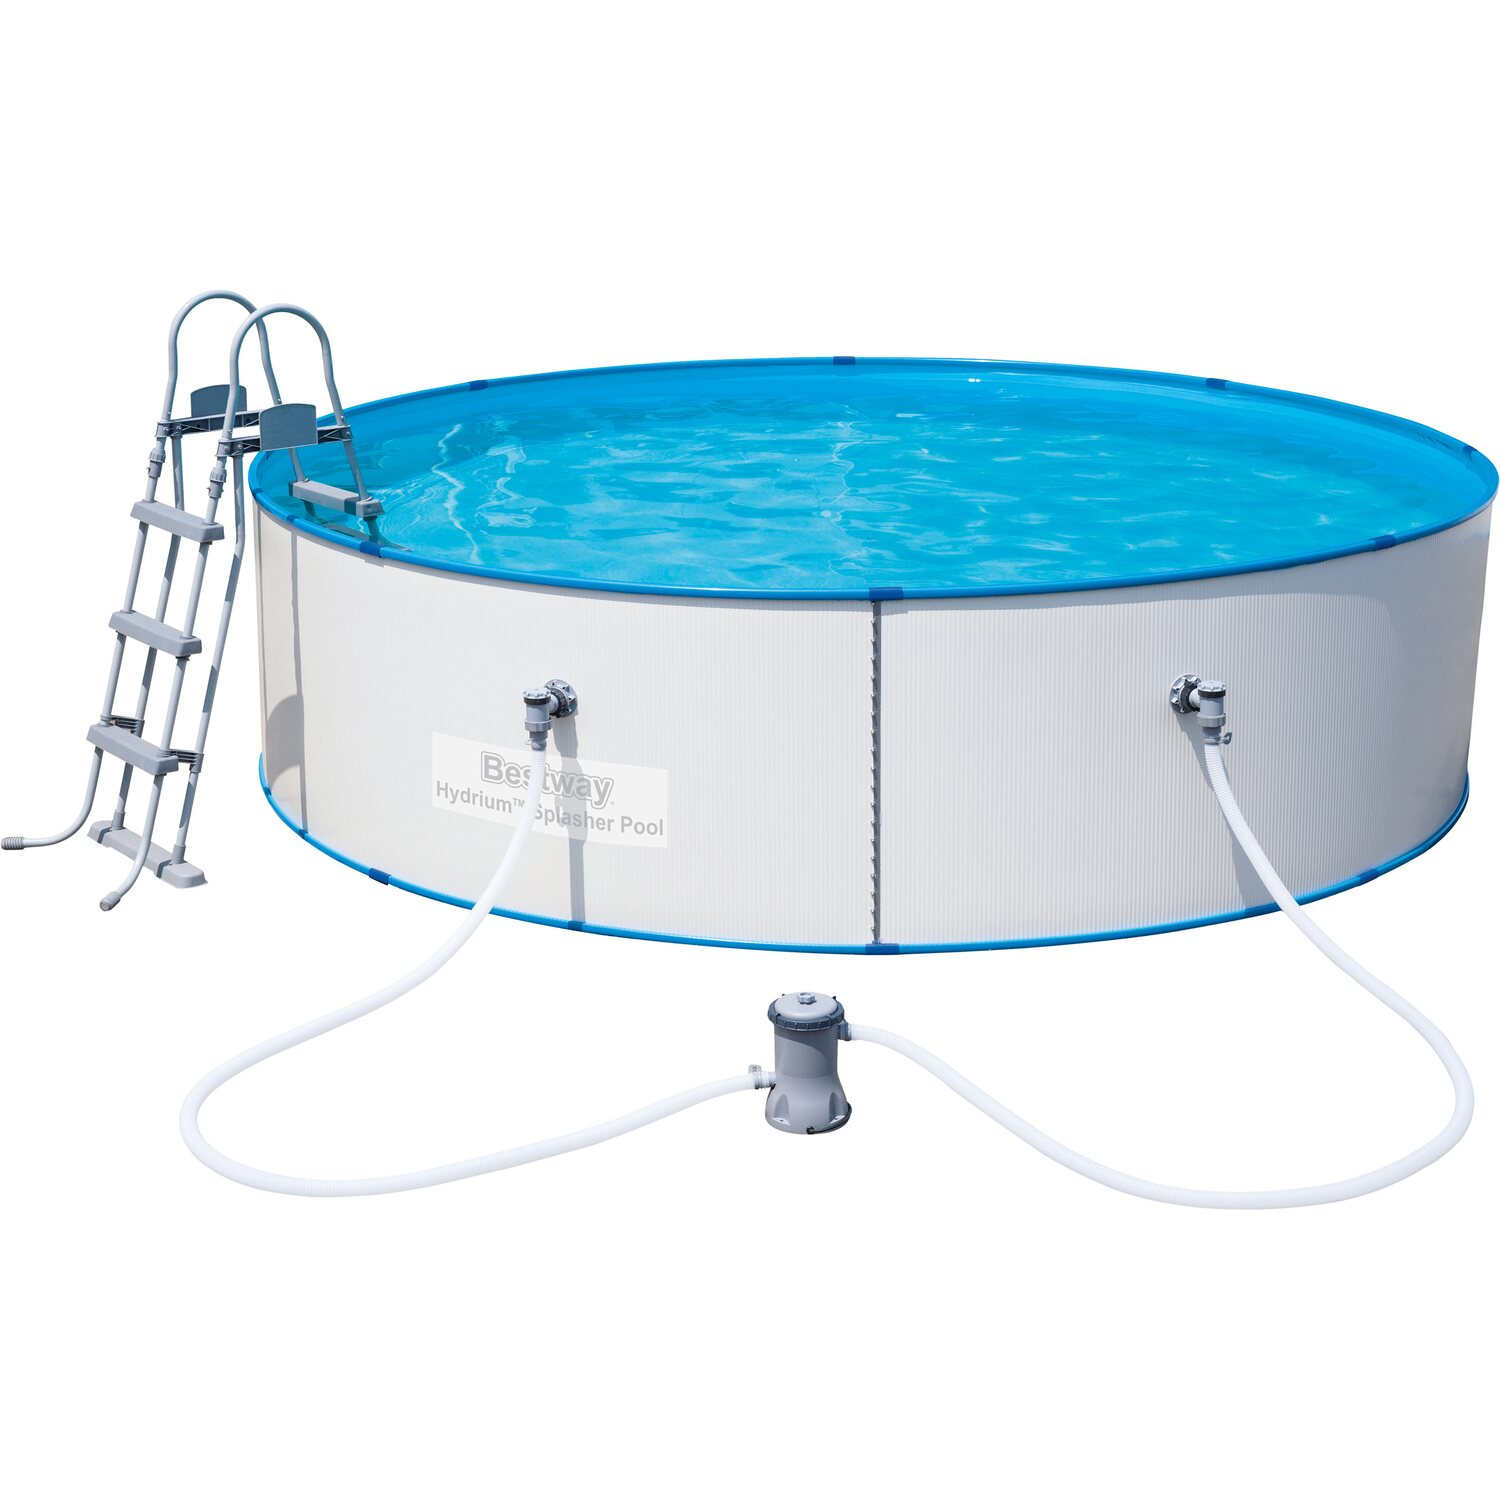 Bestway stahlwand pool set hydrium splasher 360 cm x 90 for Obi pool set